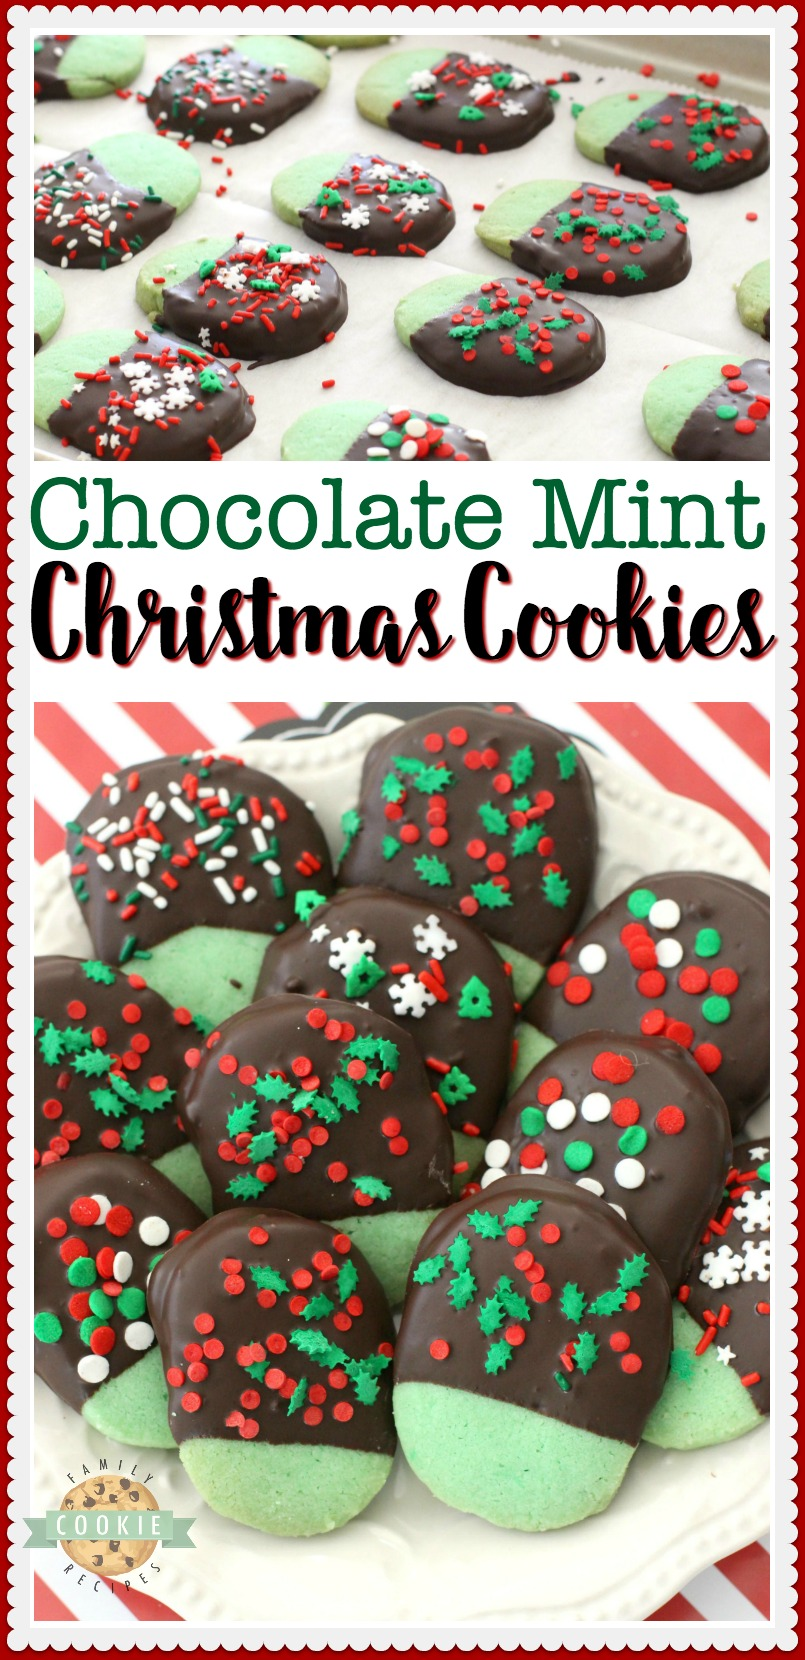 Mint Christmas Cookies made from a buttery shortbread cookie dipped in chocolate & topped with holiday sprinkles. Mint flavored Christmas Cookies perfect for cookie exchanges and gift plates! #Christmas #cookies #mint #chocolate #cookie #recipe #holiday #baking from FAMILY COOKIE RECIPES